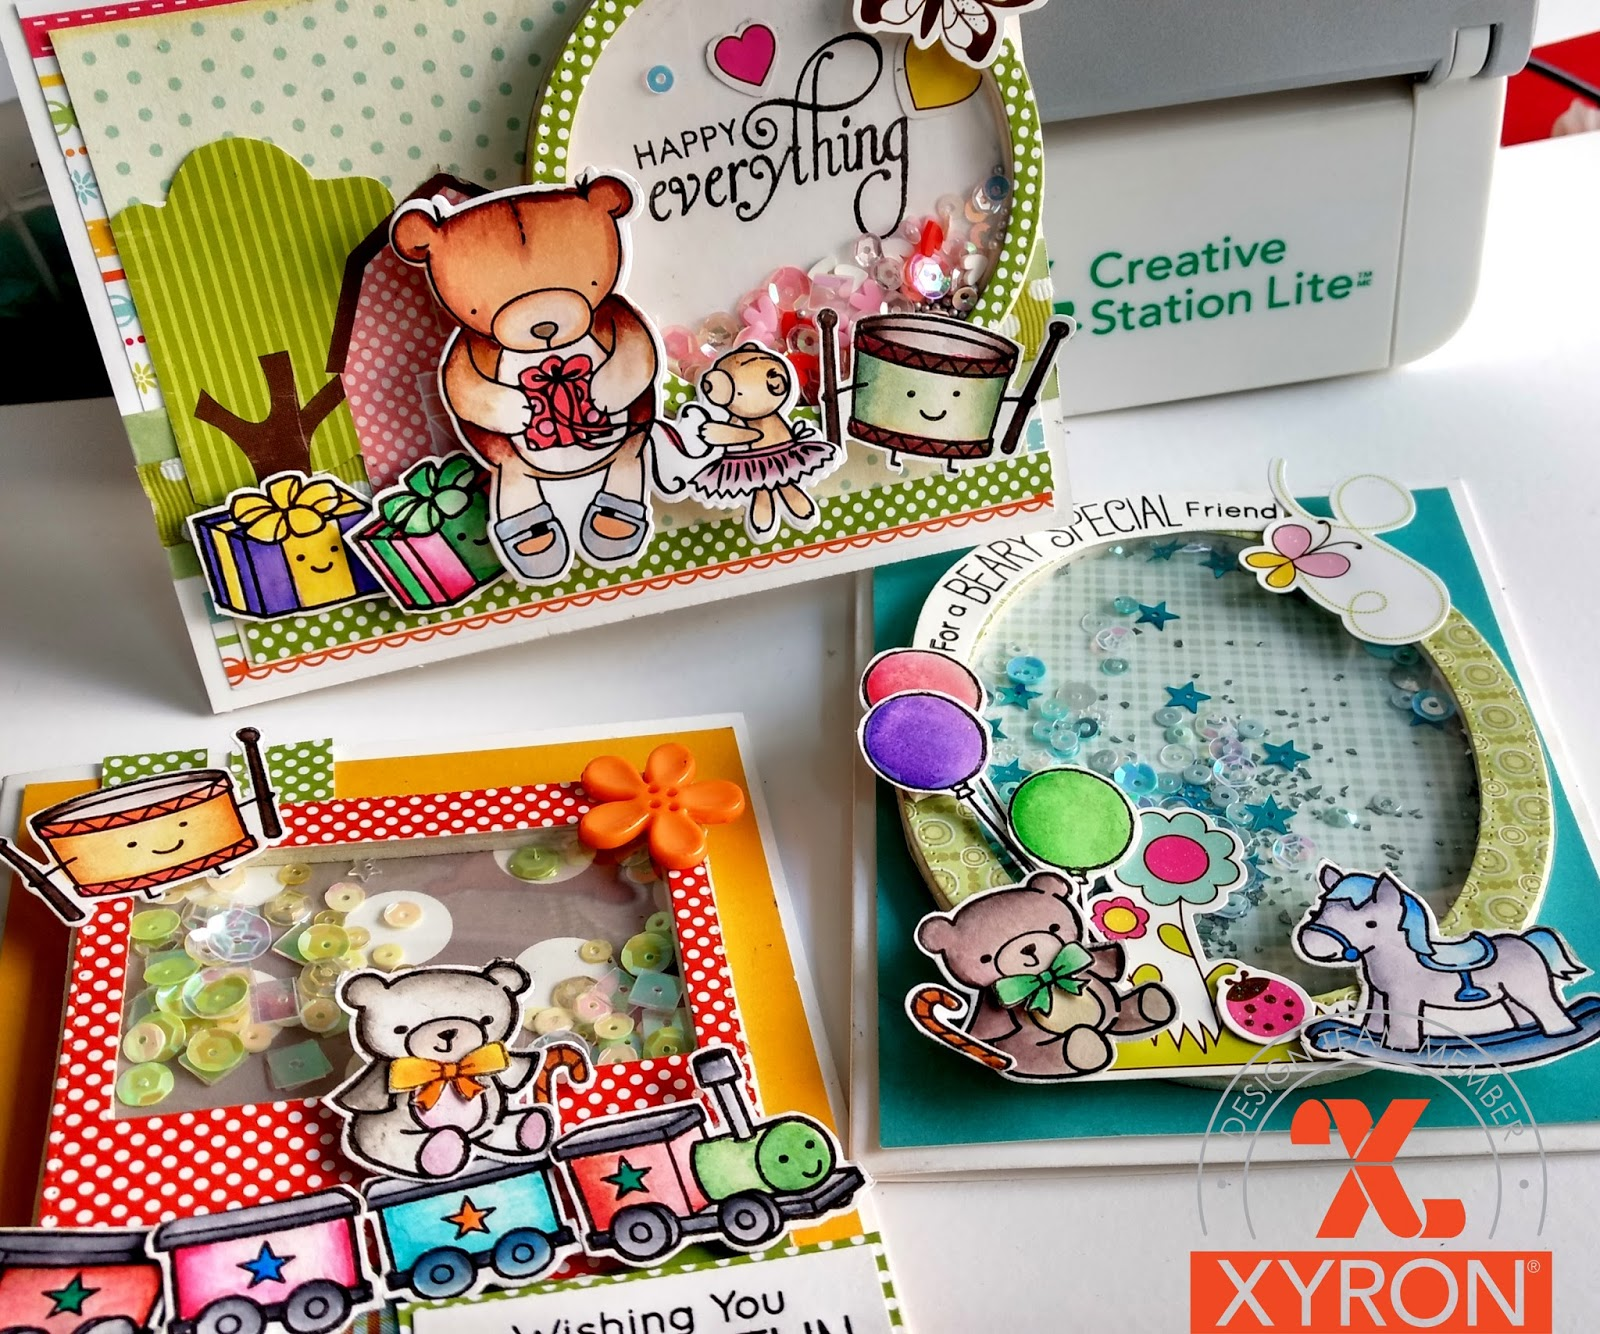 craftingforever-anita: SHAKER CARDS WITH XYRON